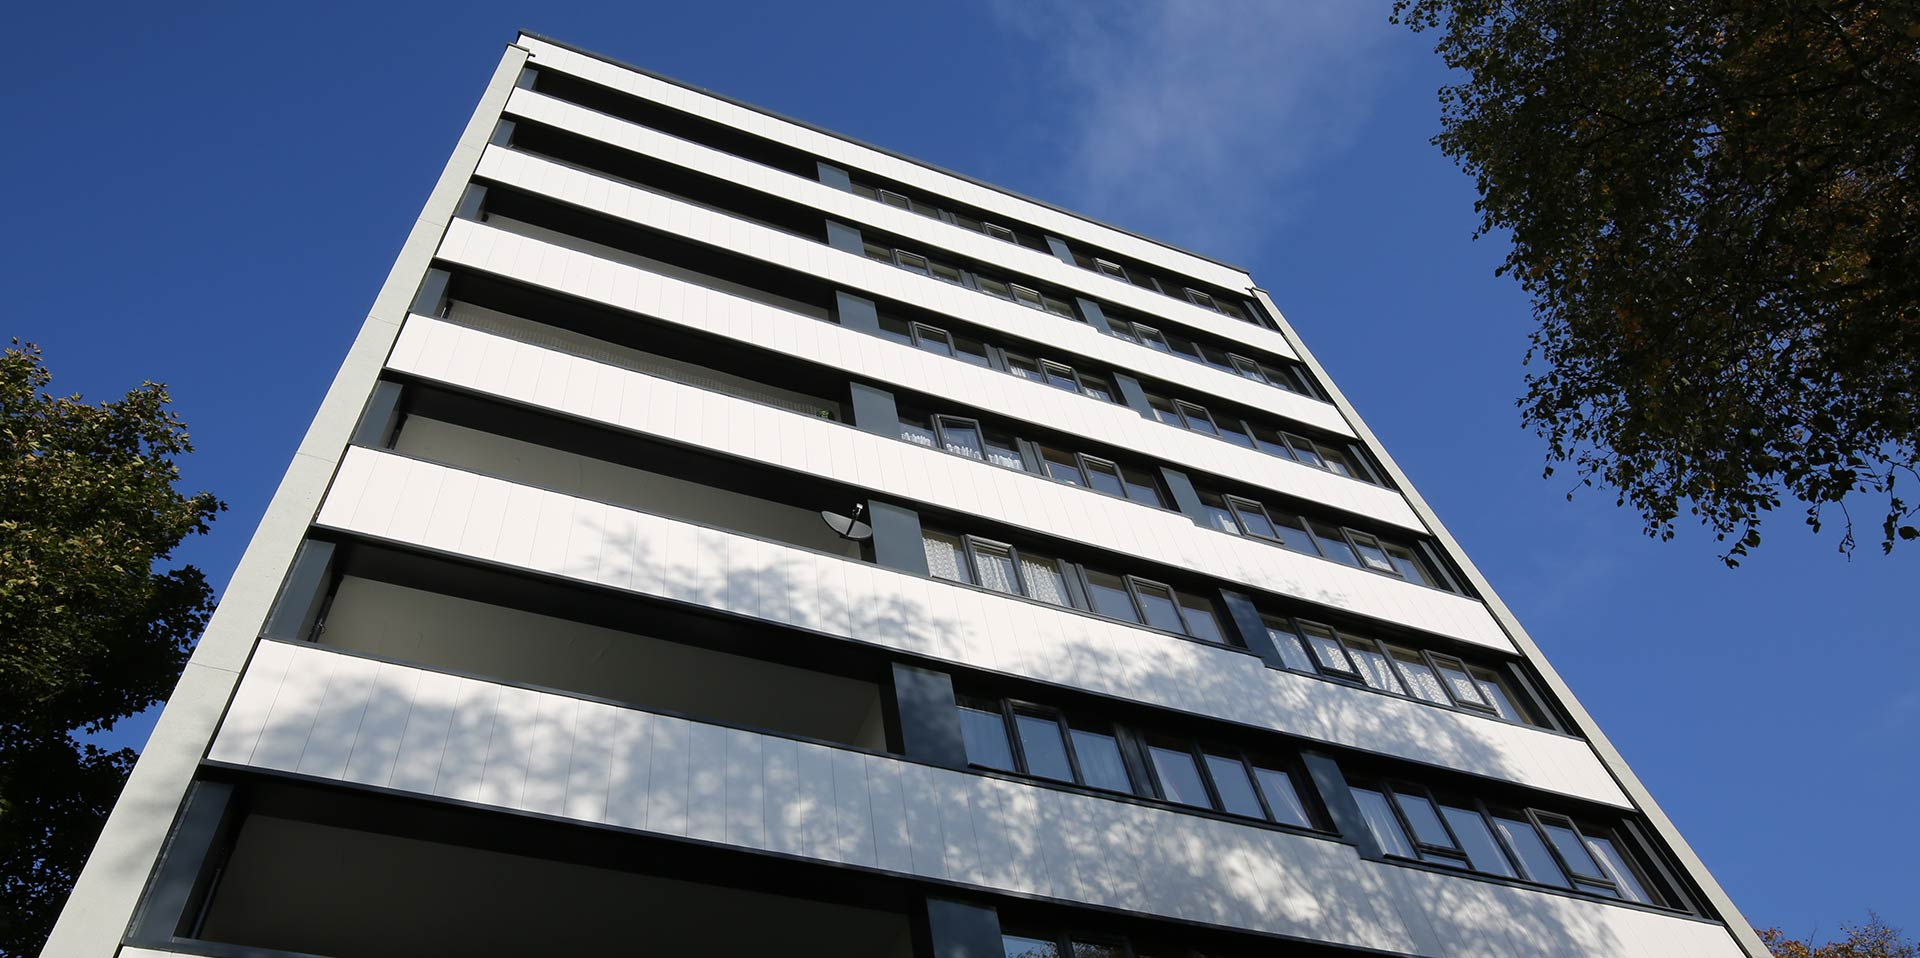 High rise building with anthracite grey PVCu windows